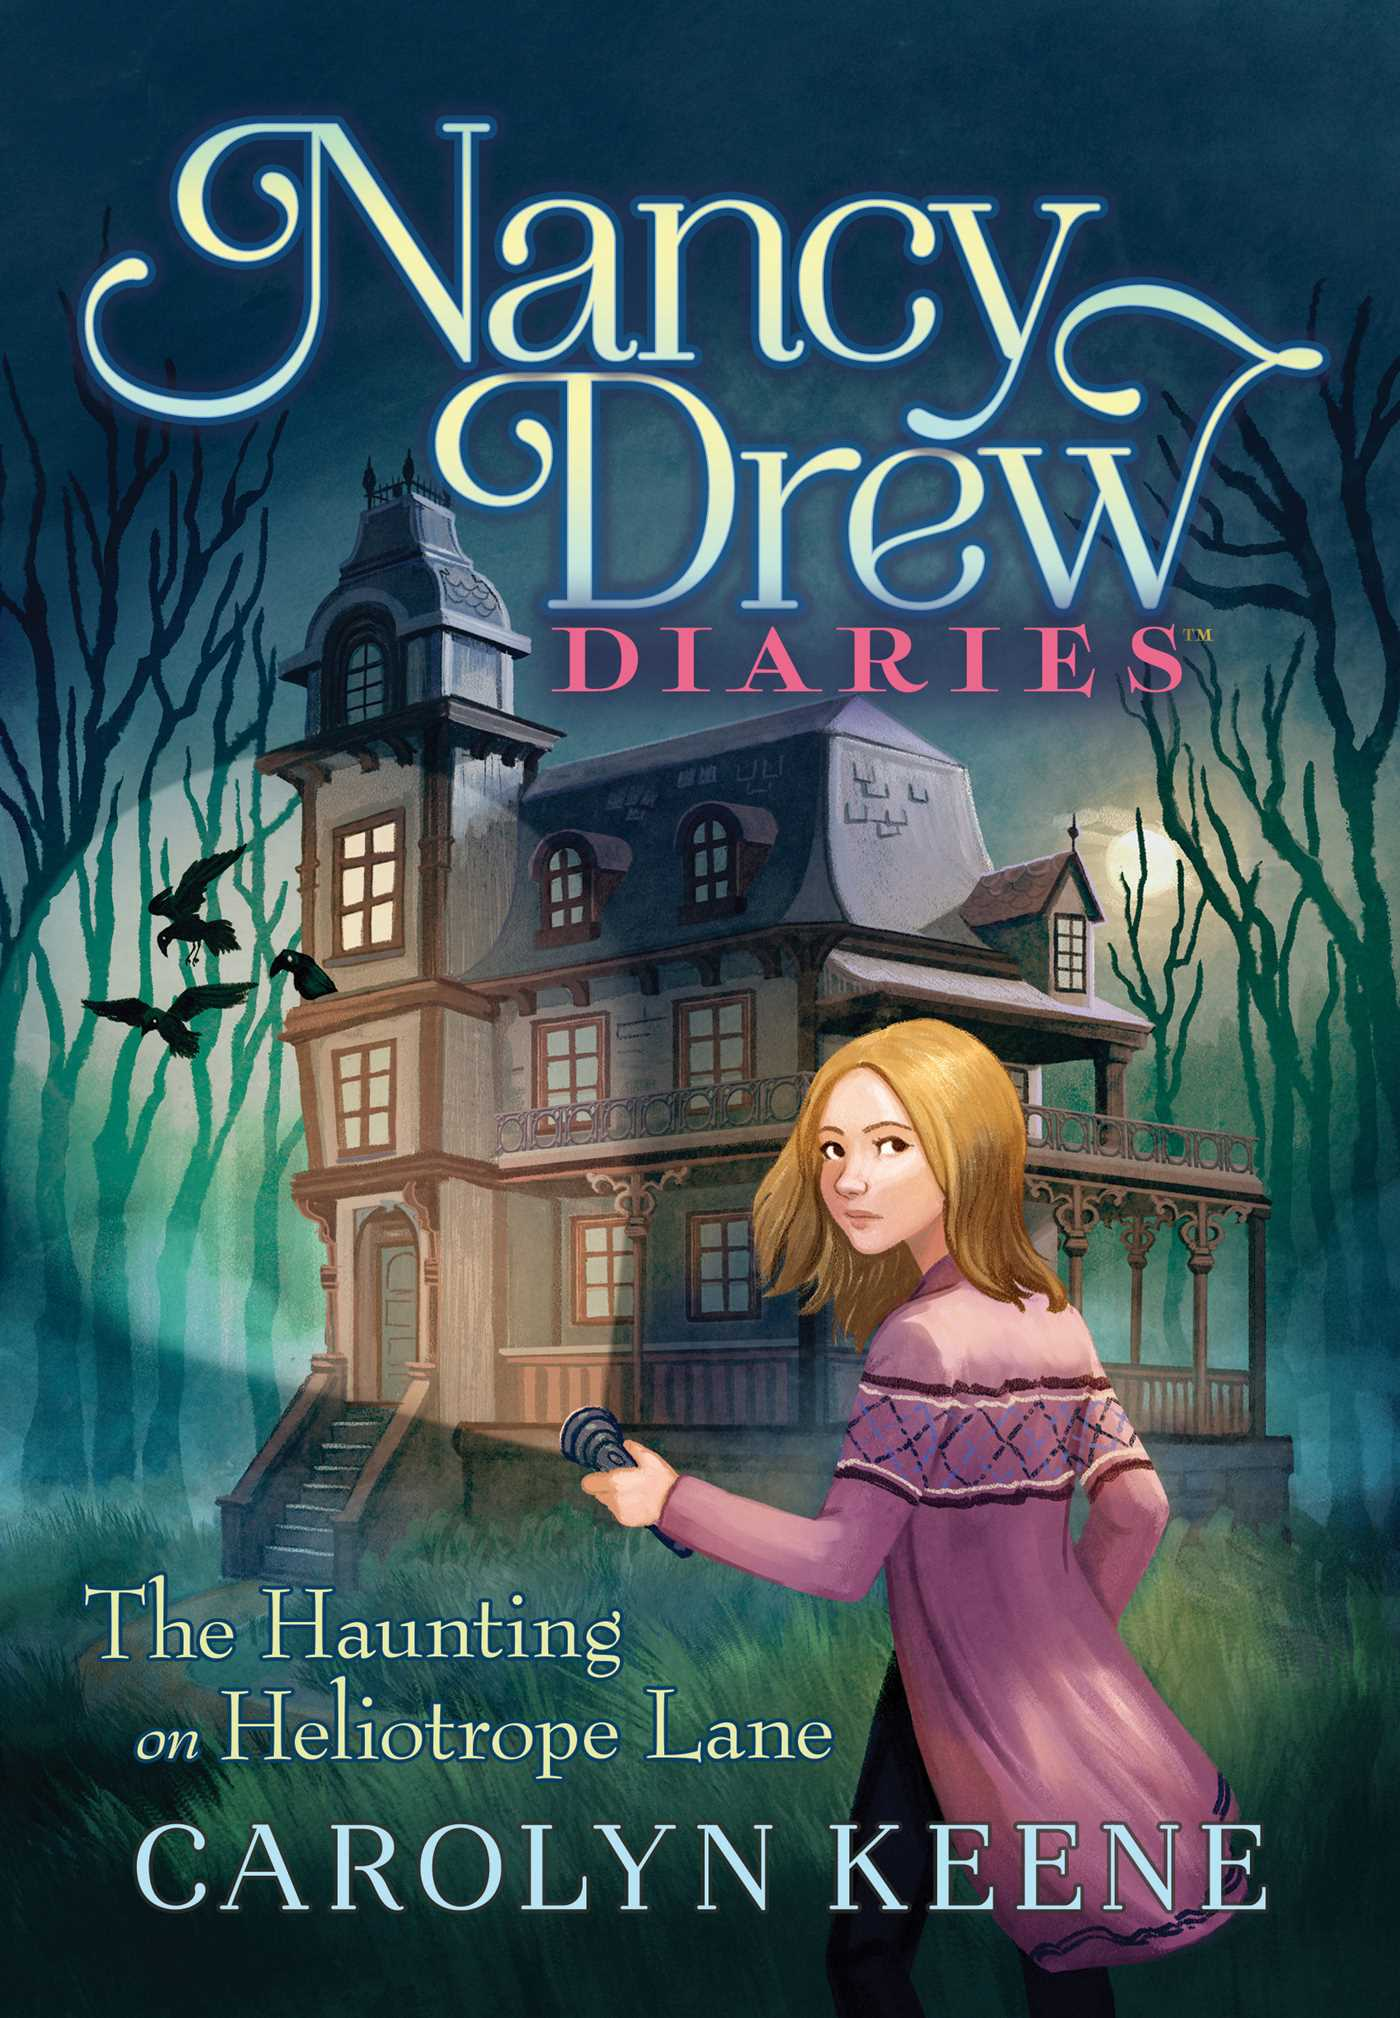 Nancy Drew Diaries #16 The Haunting on Heliotrope Lane – Cover Art and Details